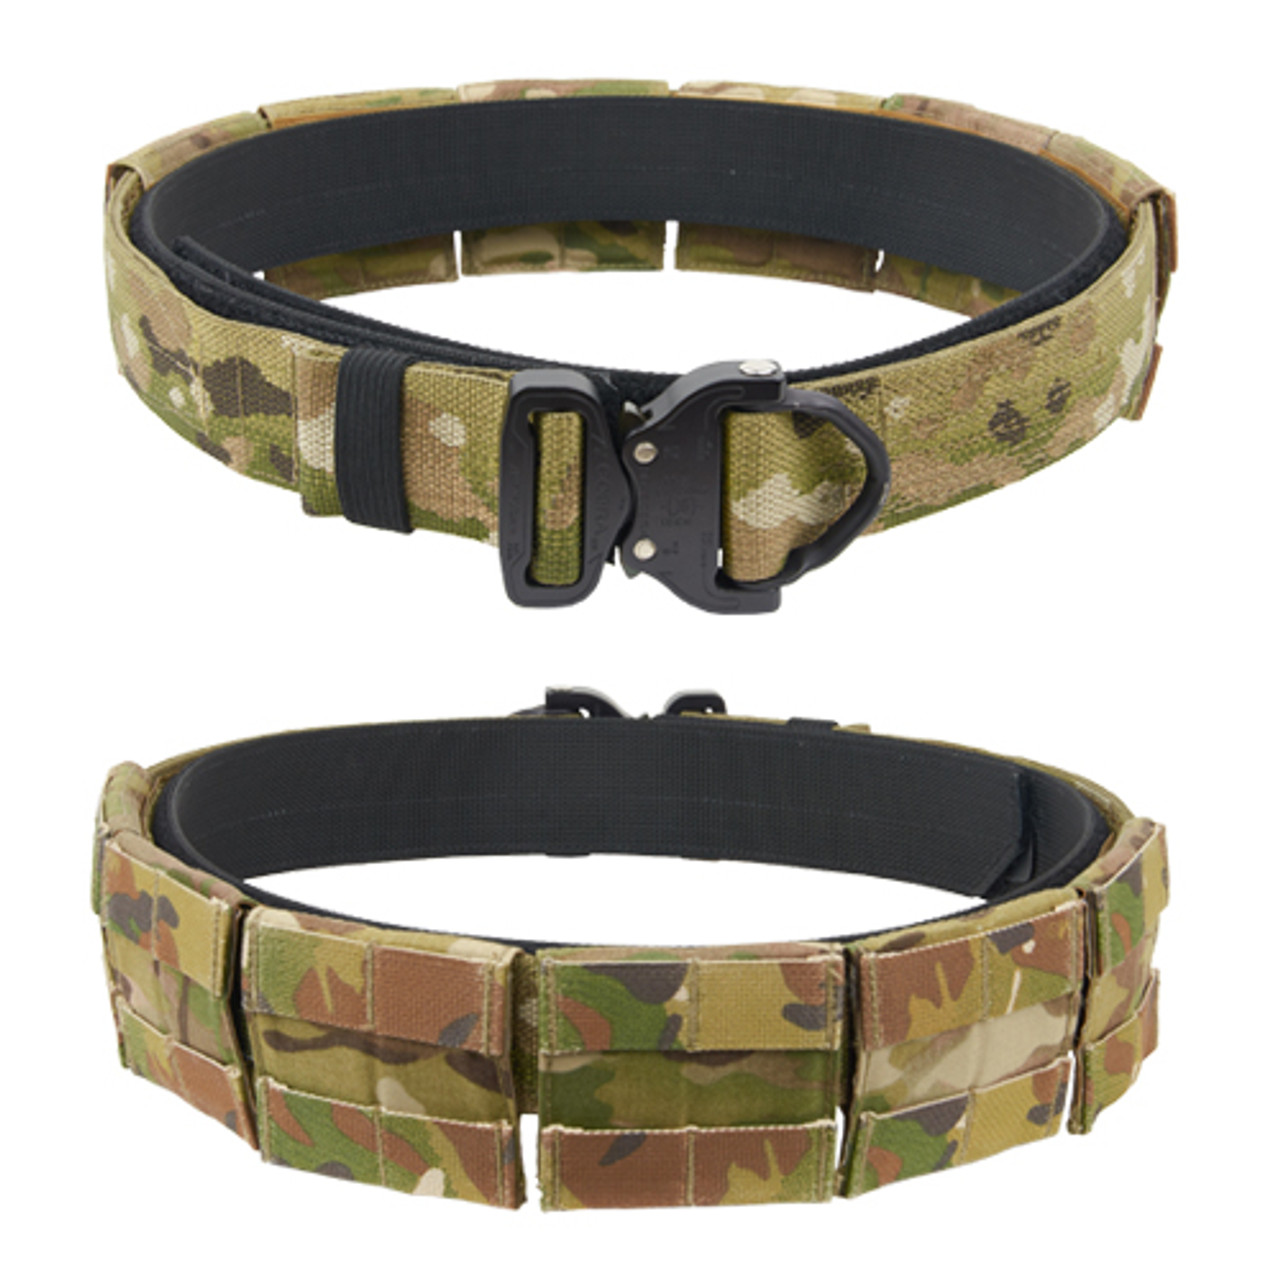 US ARMY STYLE COMBAT BELT NEW QUICK RELEASE ASSAULT WEB PISTOL STYLE SECURITY